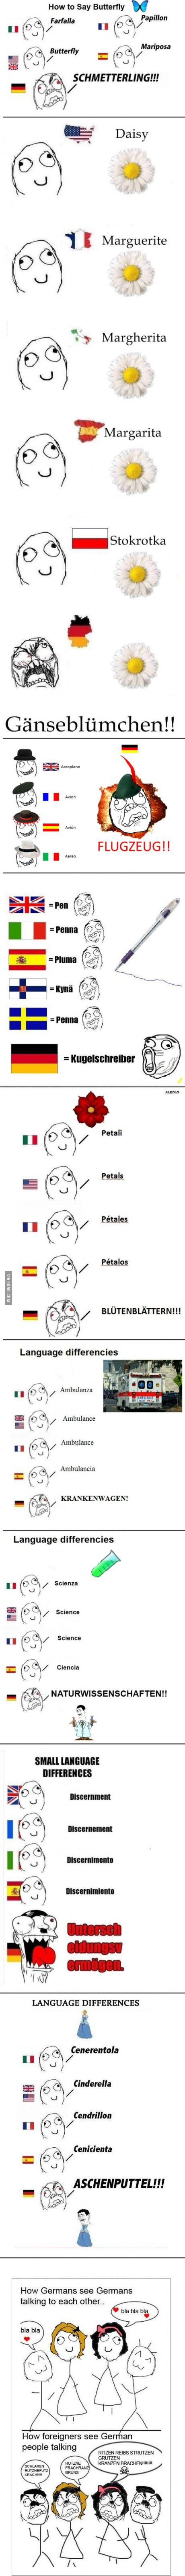 I've always found German to be a beautiful language... but this is how my friends think... lol, quite a difference...